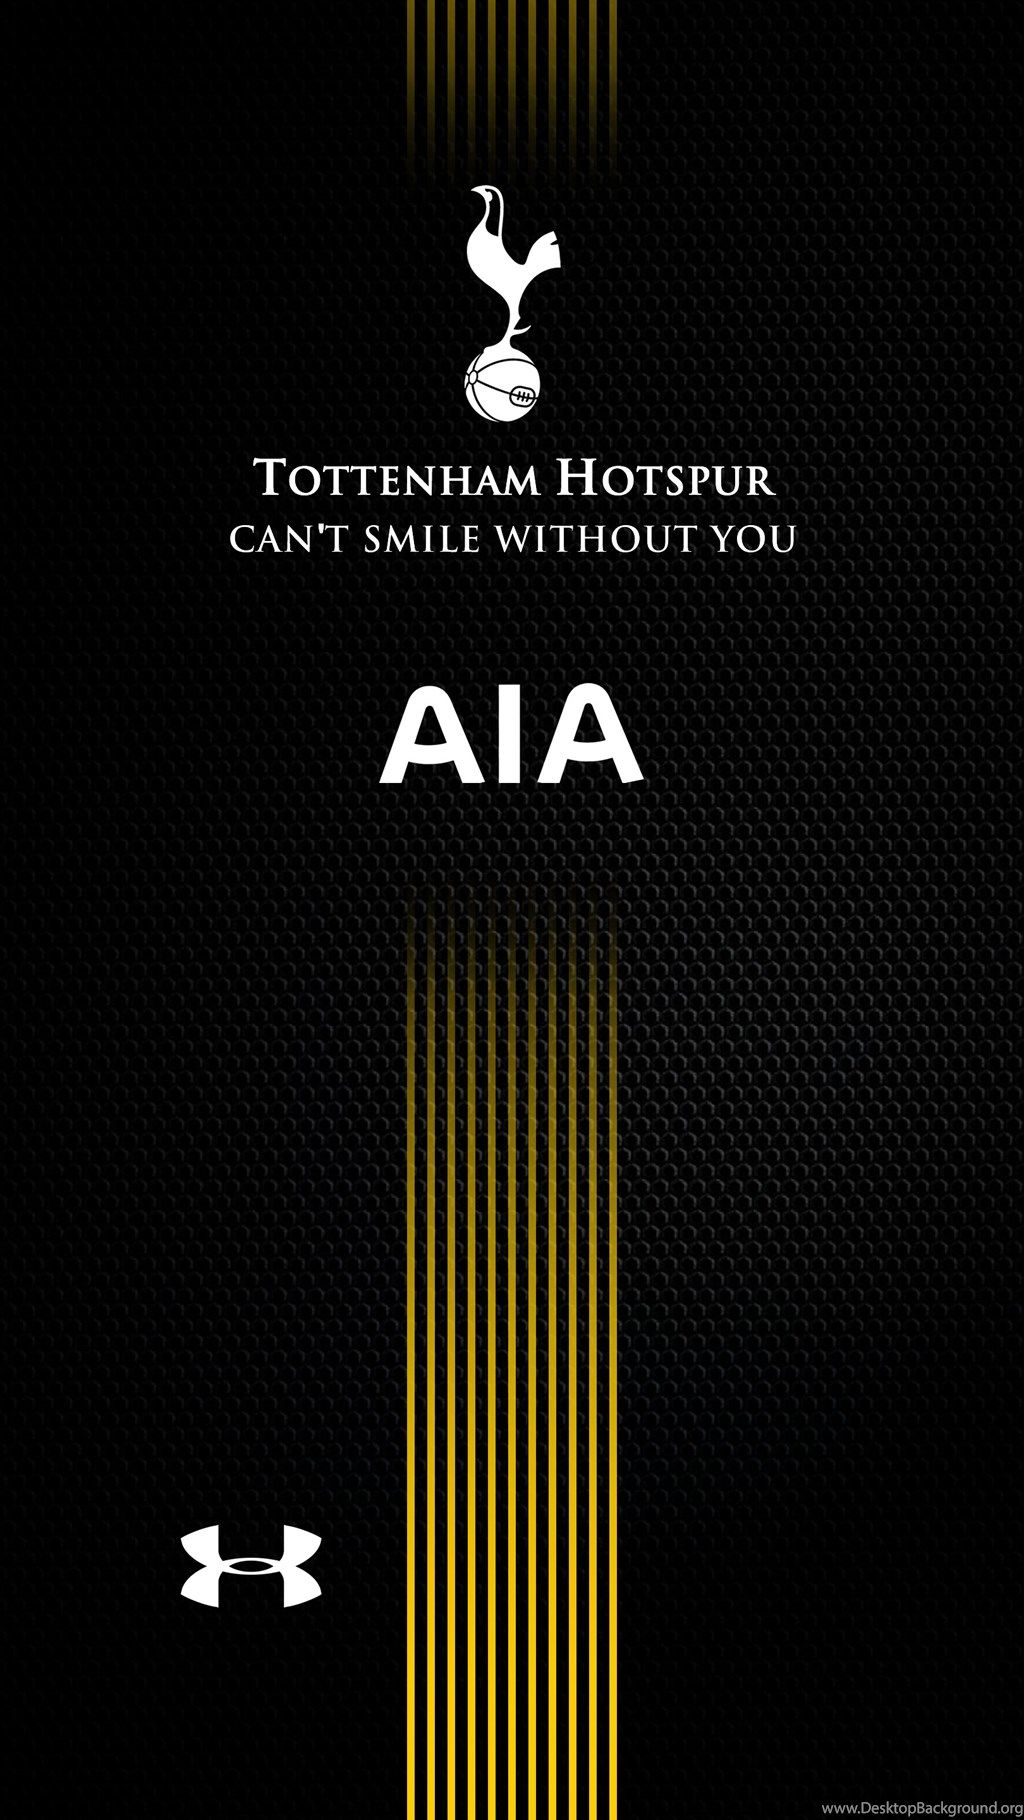 Download Tottenham Hotspur Smartphone Wallpapers Bygolotehd 02 Picoolio Desktop Backgroun Tottenham Wallpaper Tottenham Hotspur Wallpaper Tottenham Hotspur